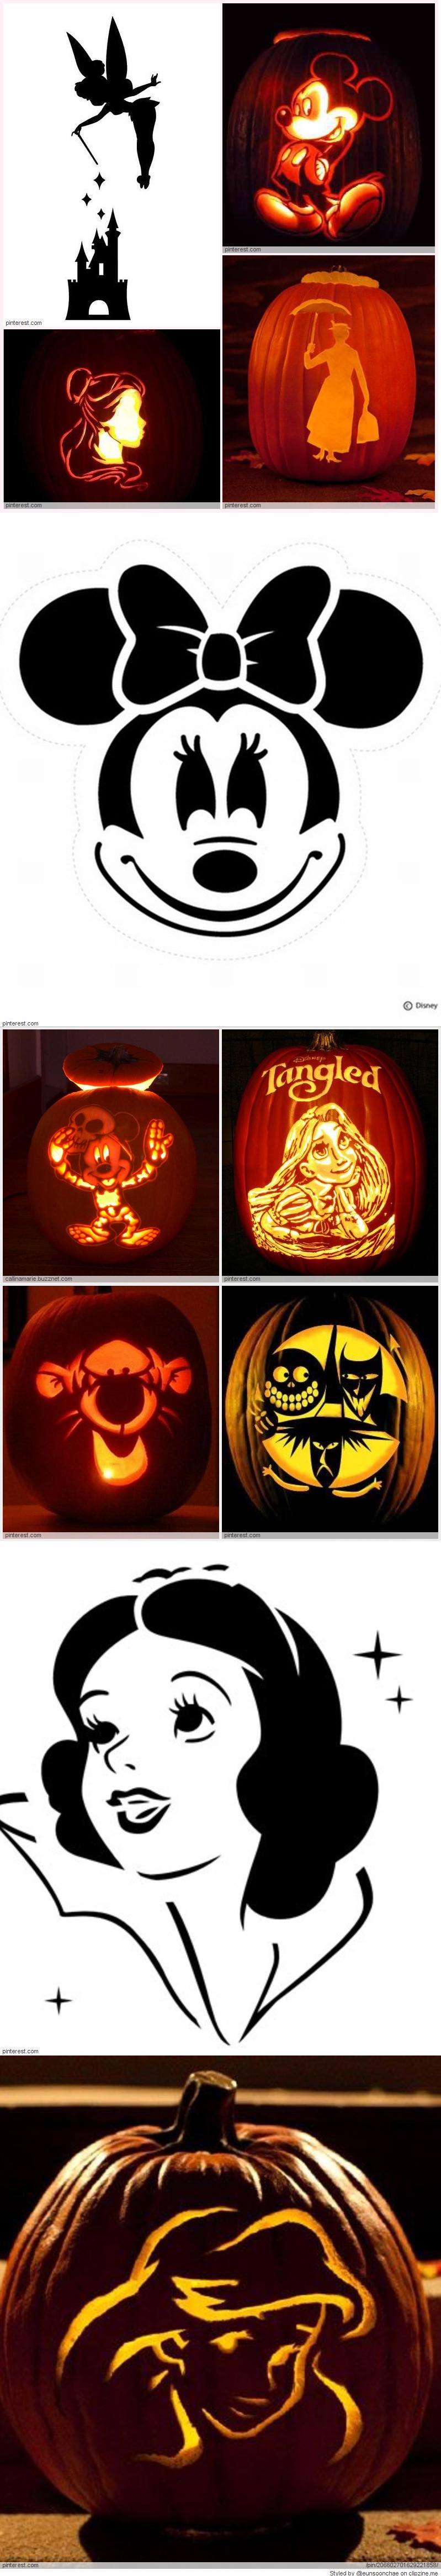 Last-minute pumpkin carving ideas. Gourd = apple core. Now these ...